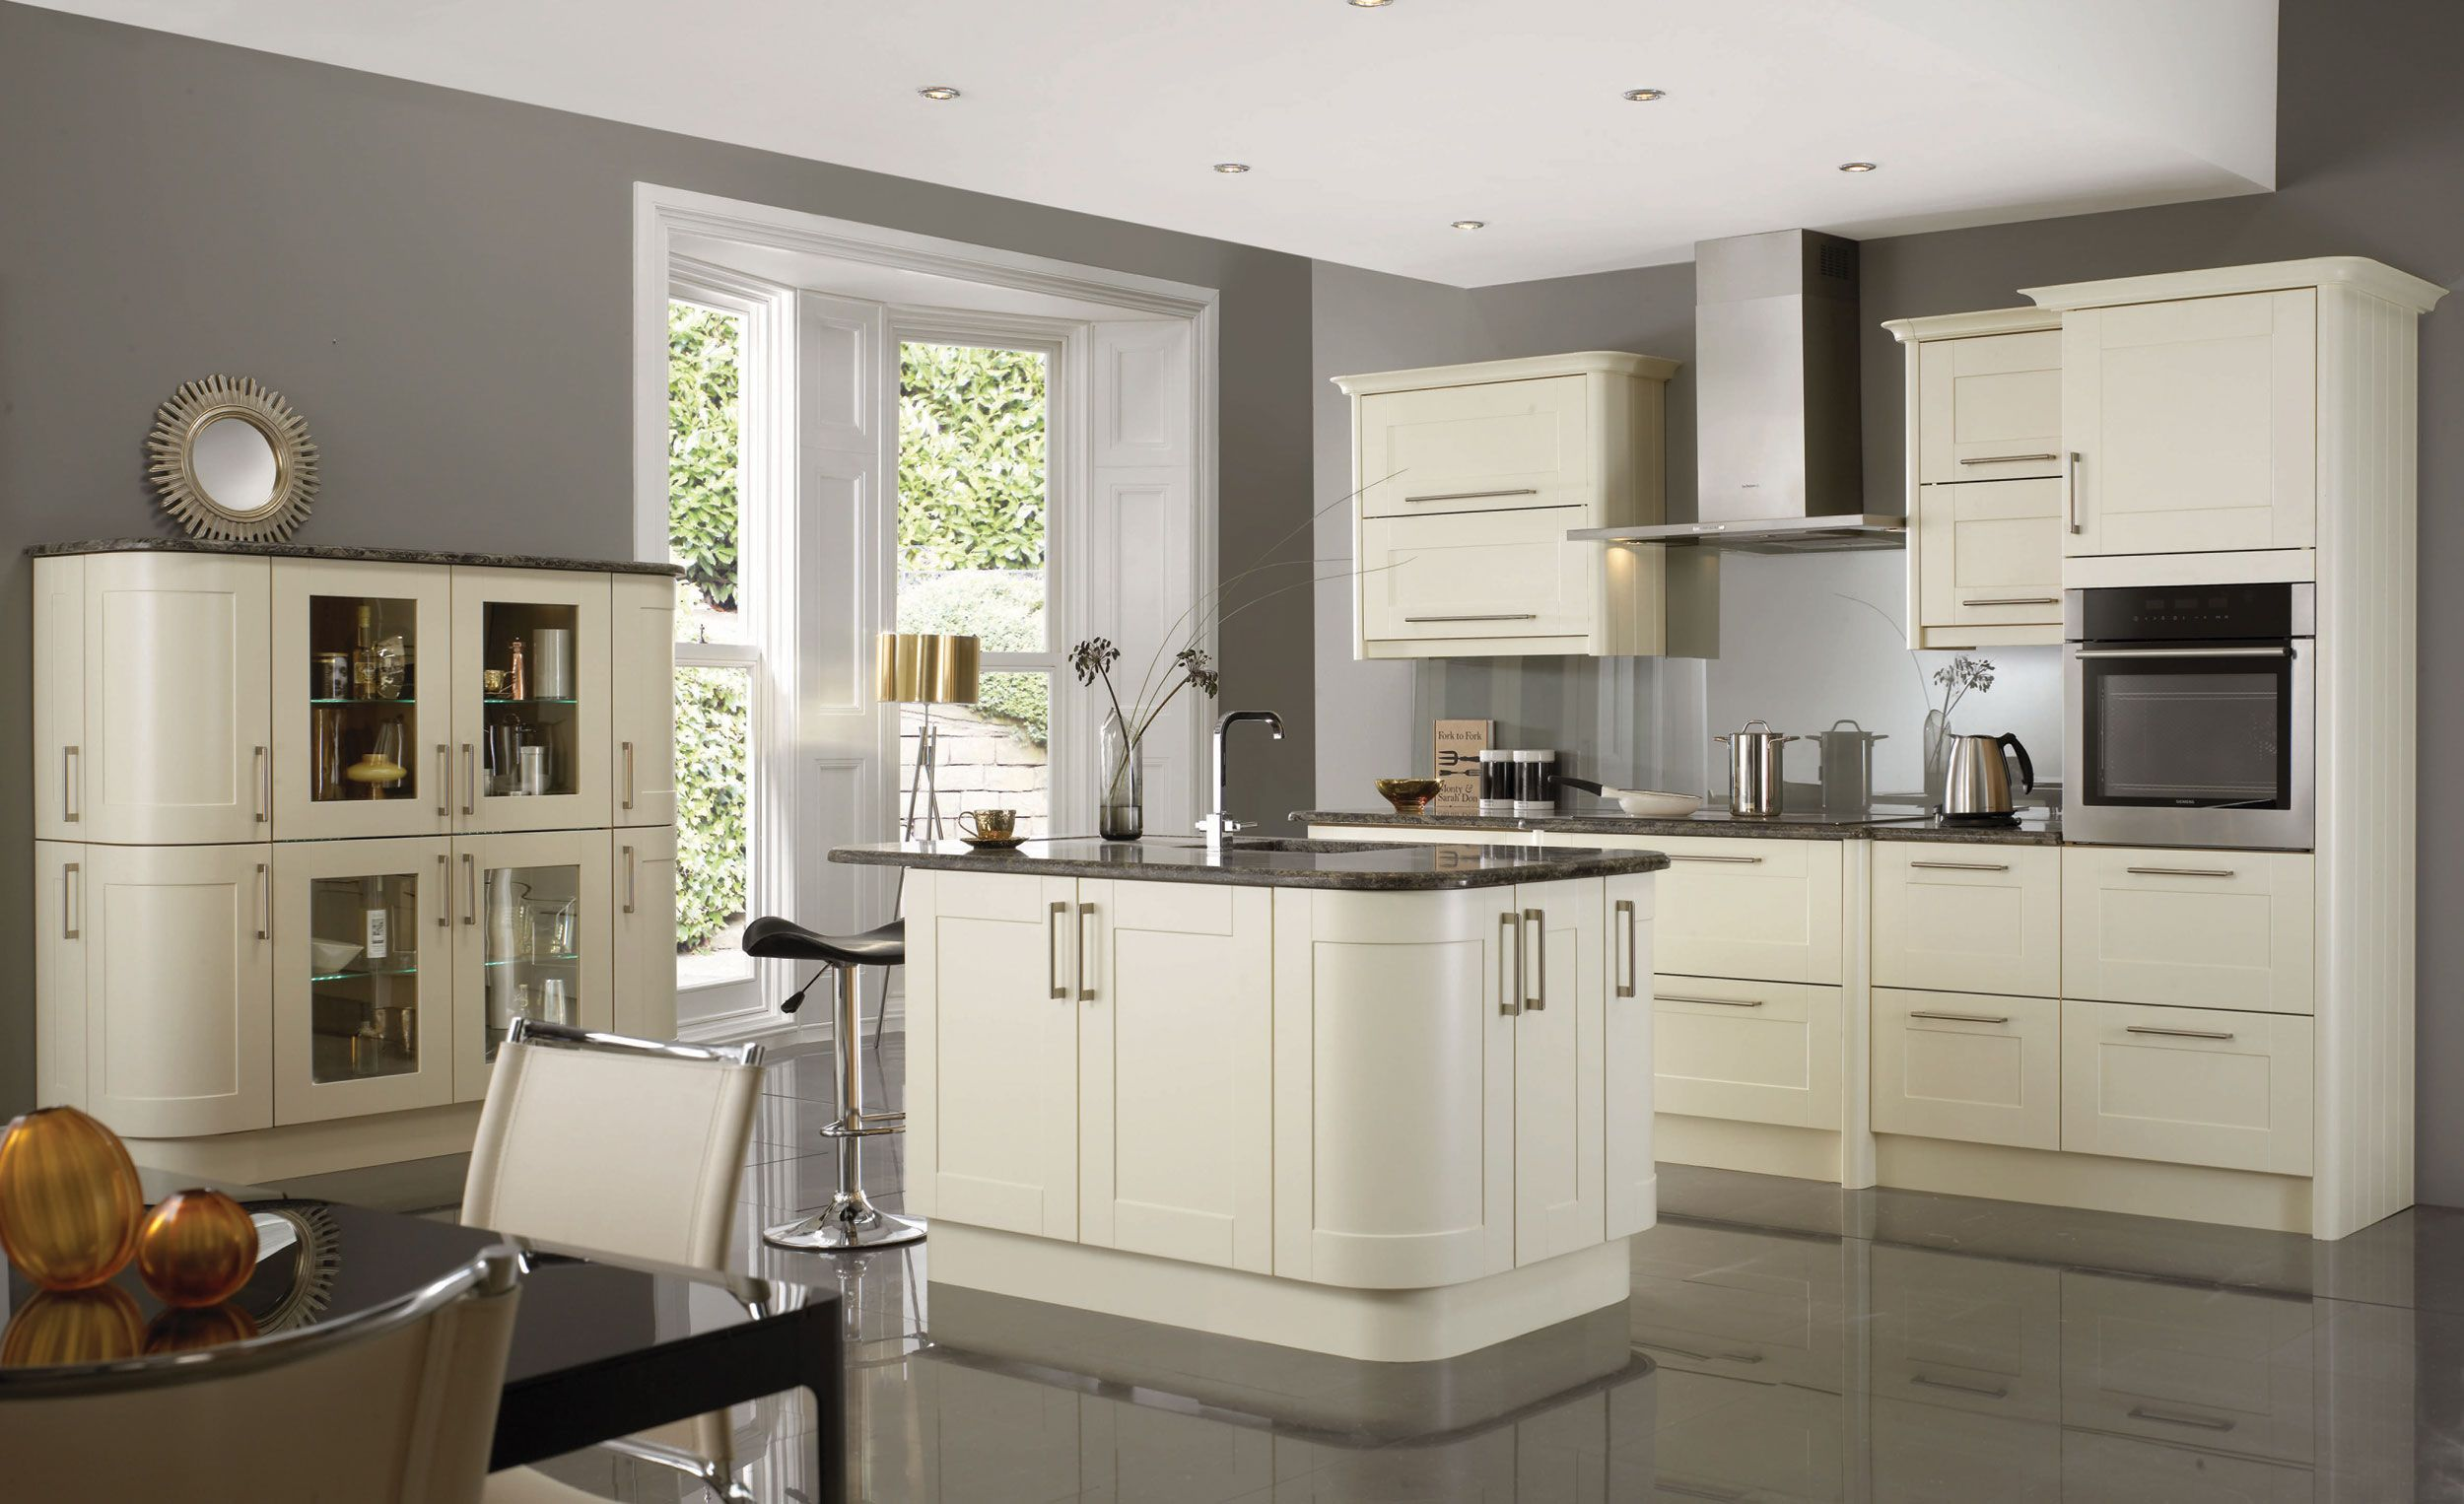 image result for gray kitchen walls cream cabinets white countertop grey kitchen walls on kitchen cabinets grey and white id=38766